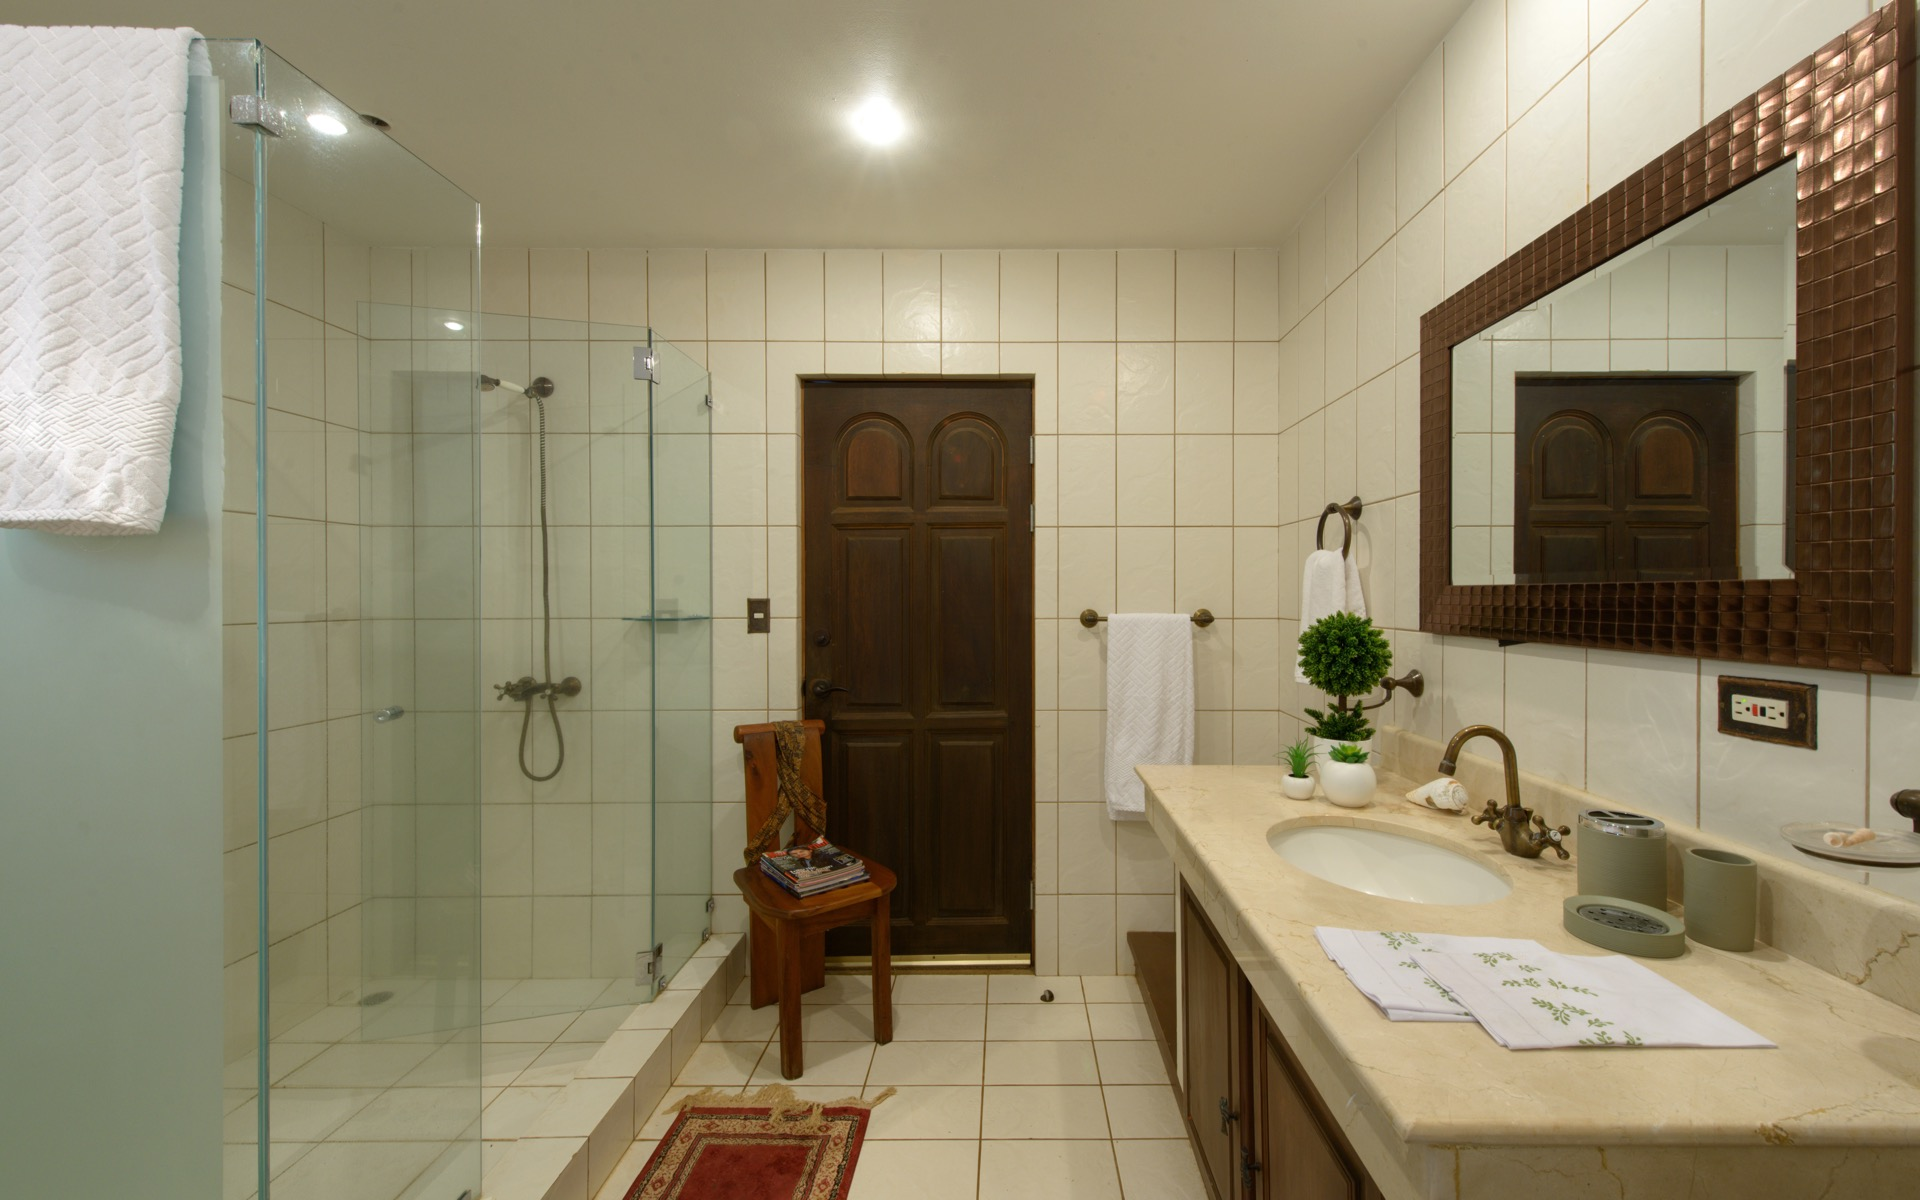 Another full bathroom with spacious shower